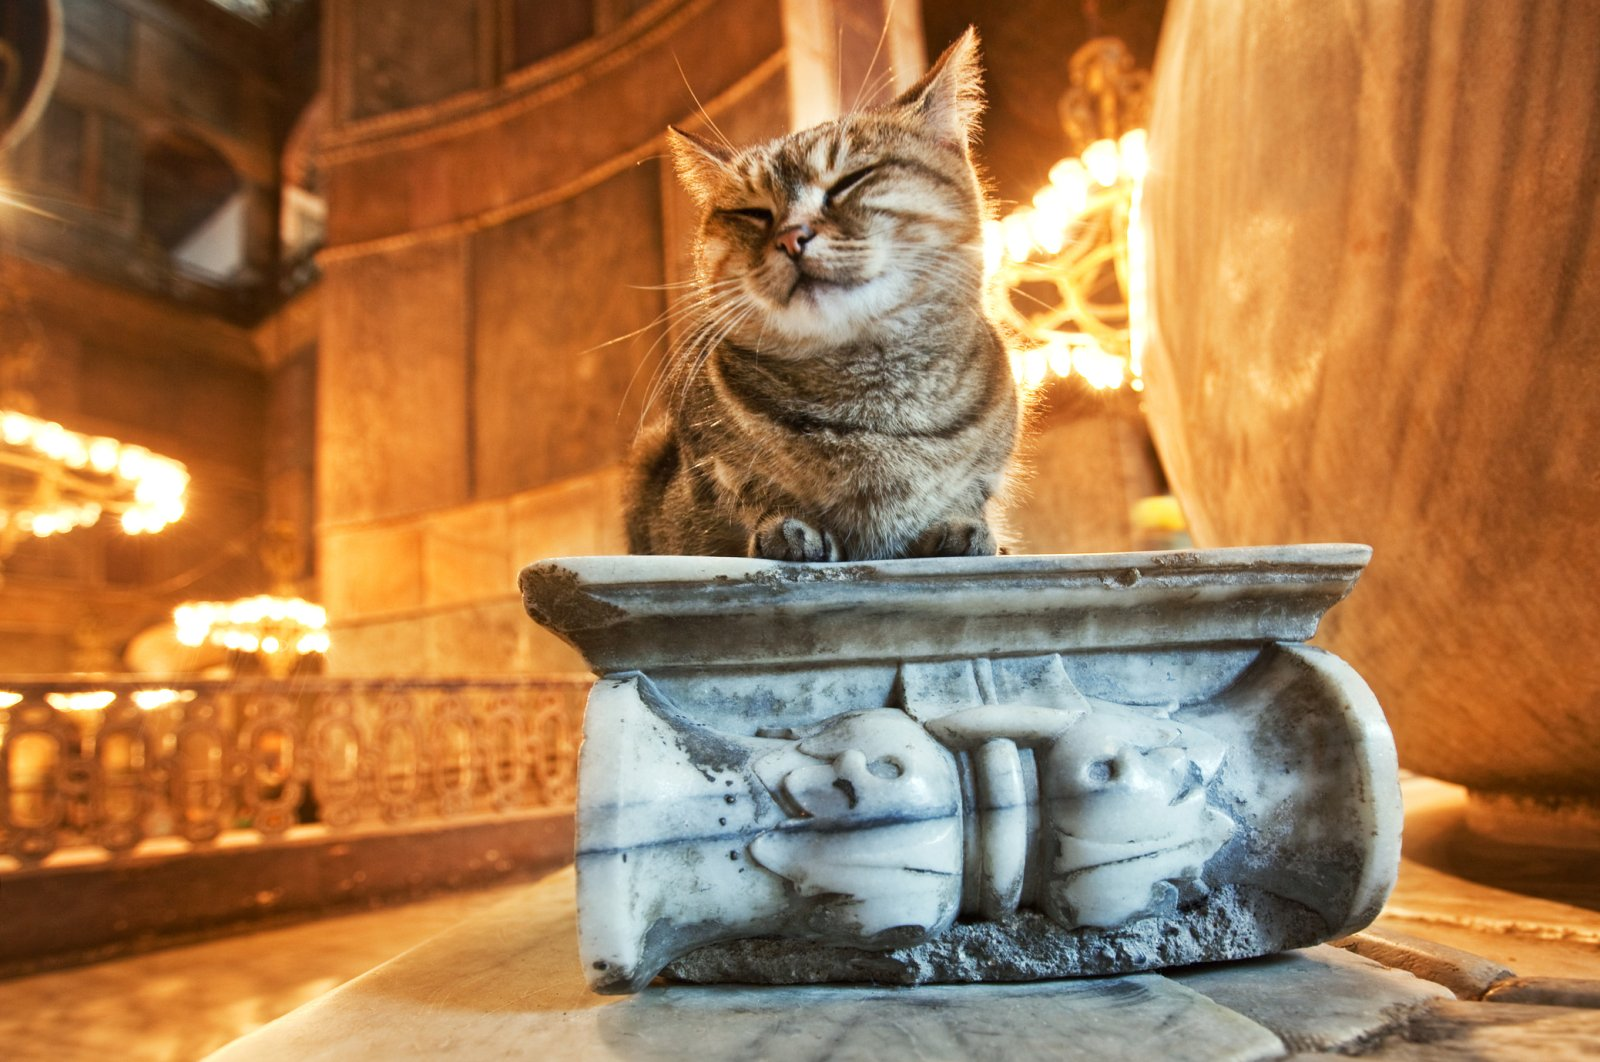 Like this cat that frequents Hagia Sophia, strays have always been welcomed in Istanbul. (iStock Photo)